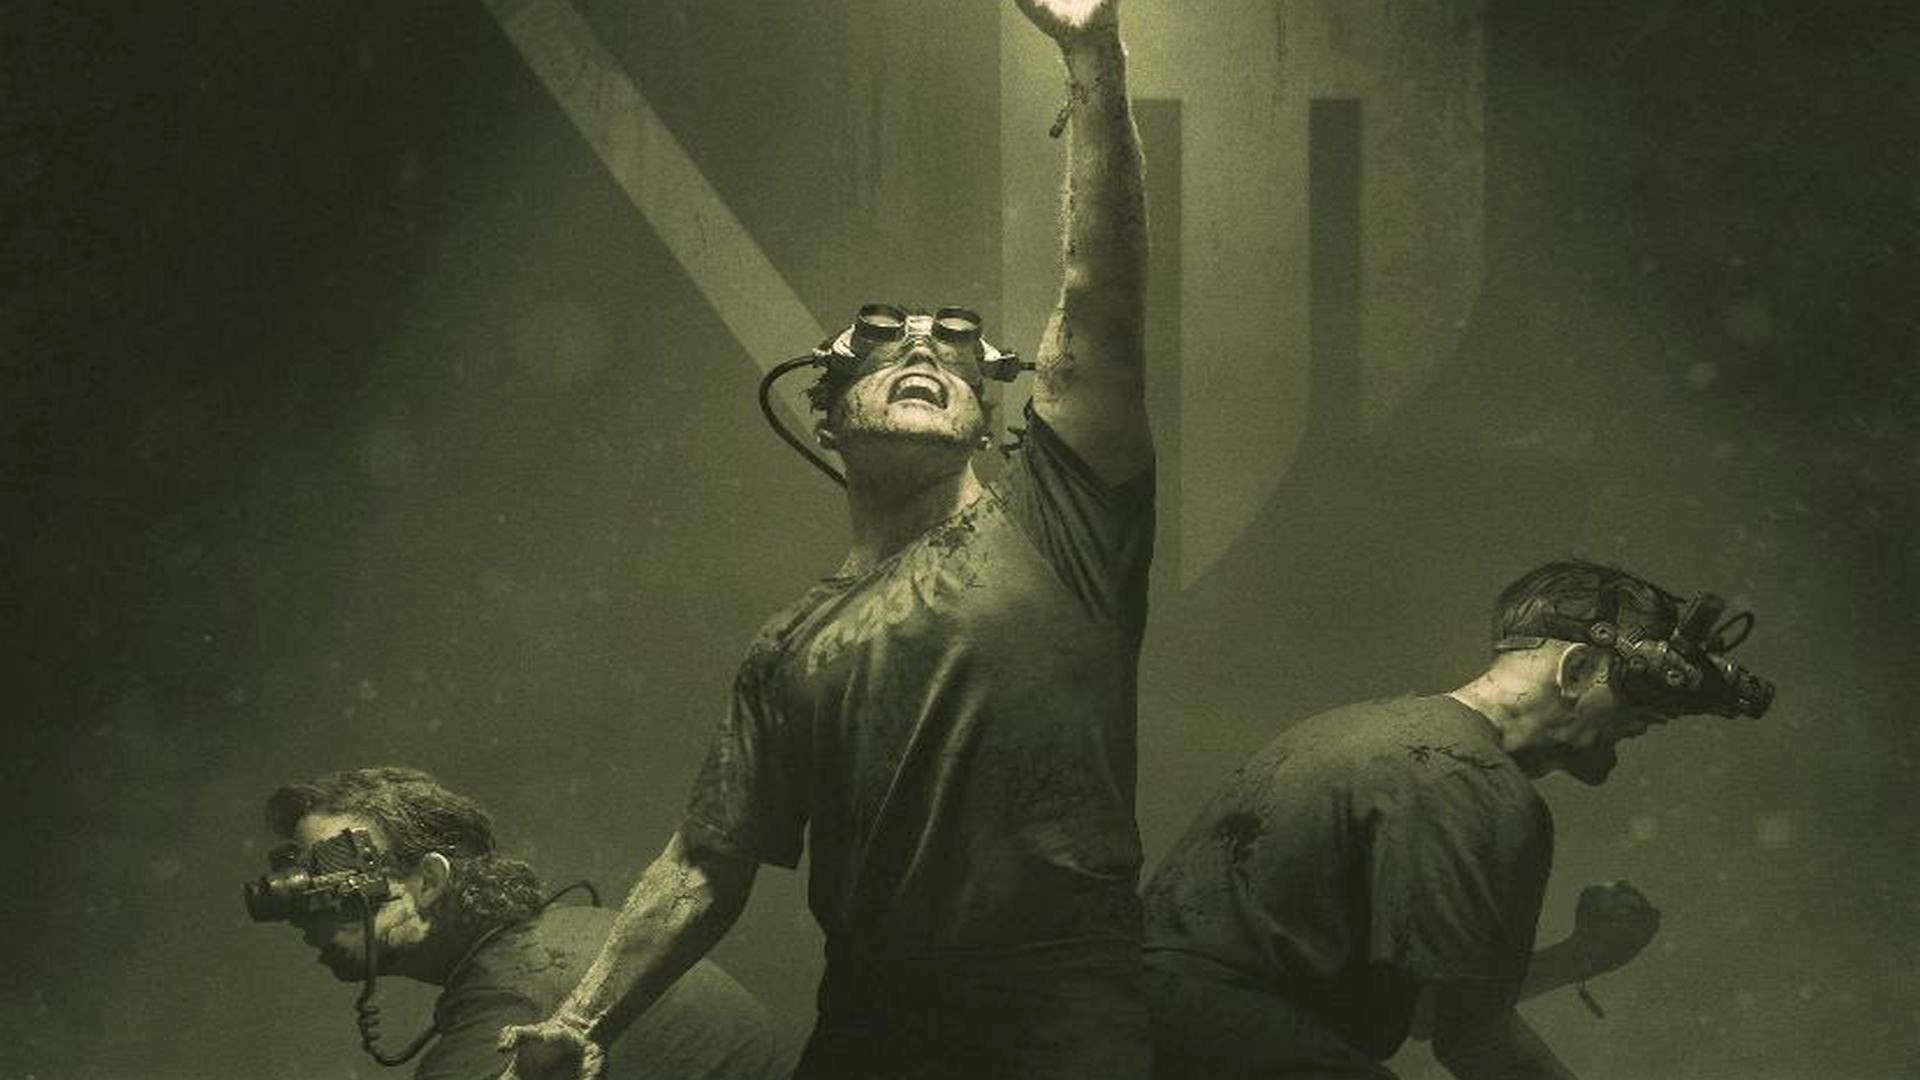 The next Outlast game has been announced – and it's co-op